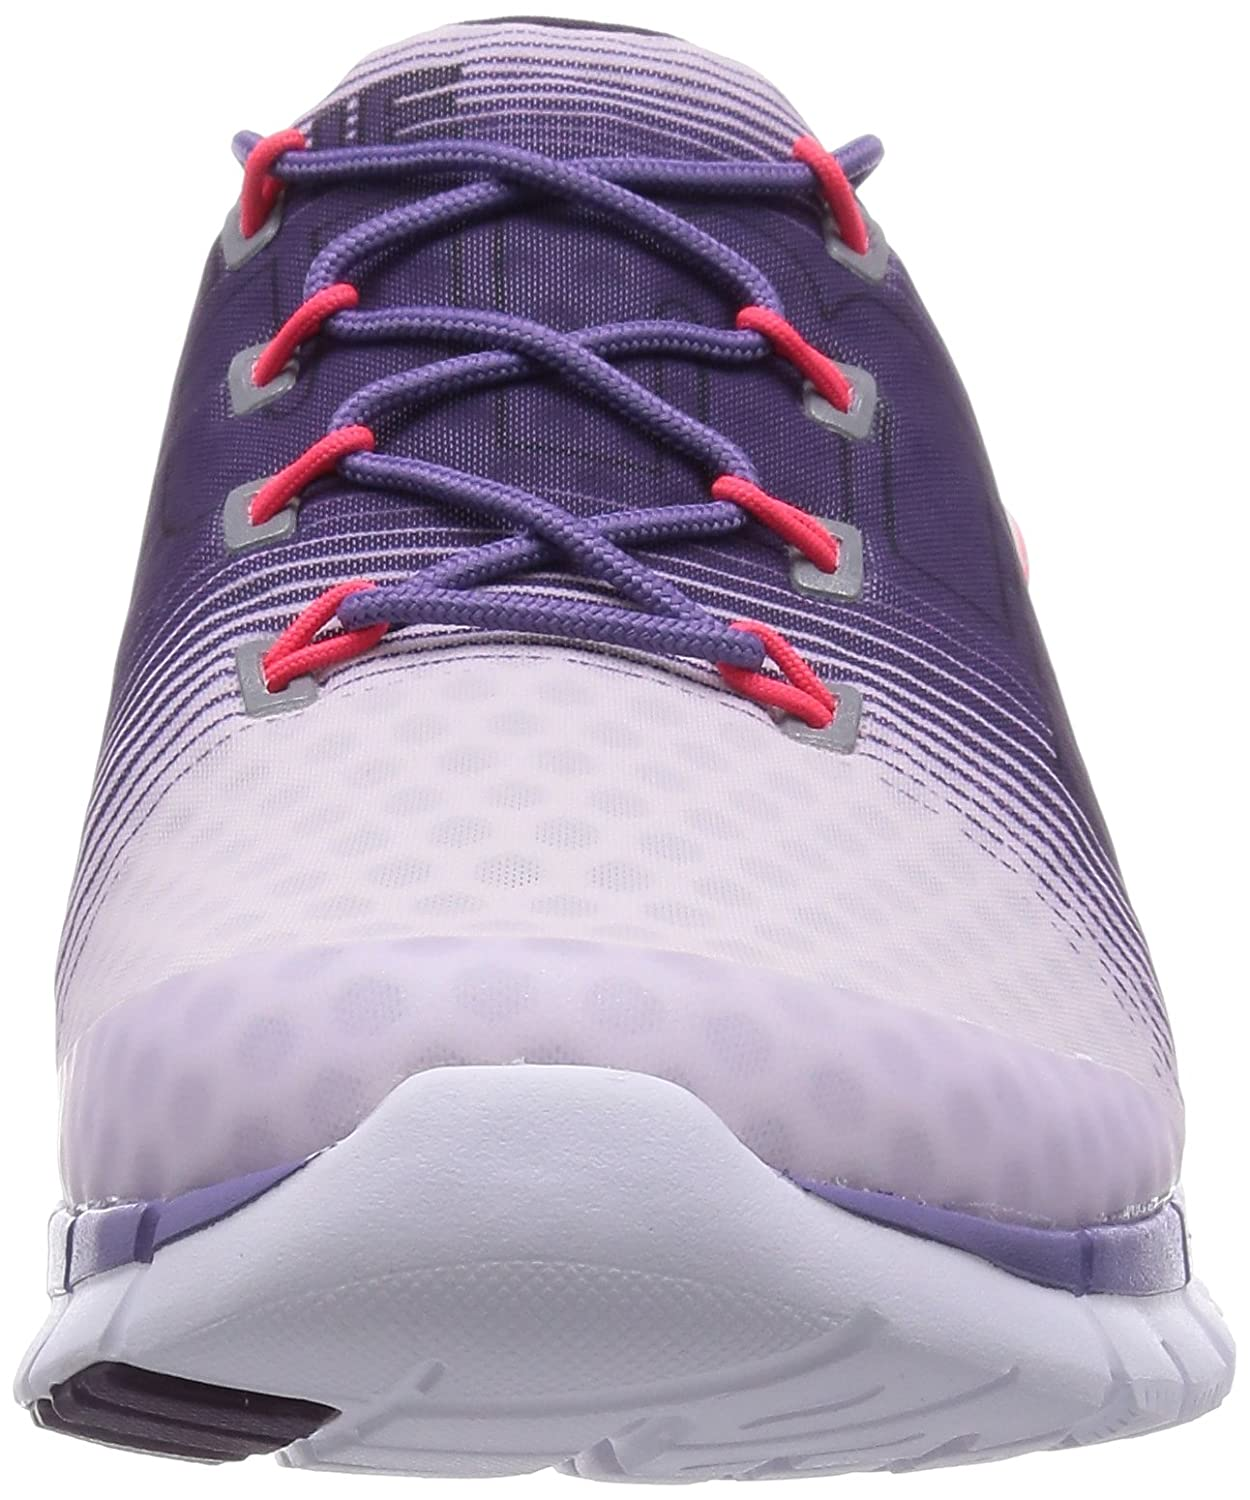 low priced 4188f 5eb7a Reebok Women s Zpump Fusion Running Shoes  Amazon.in  Shoes   Handbags